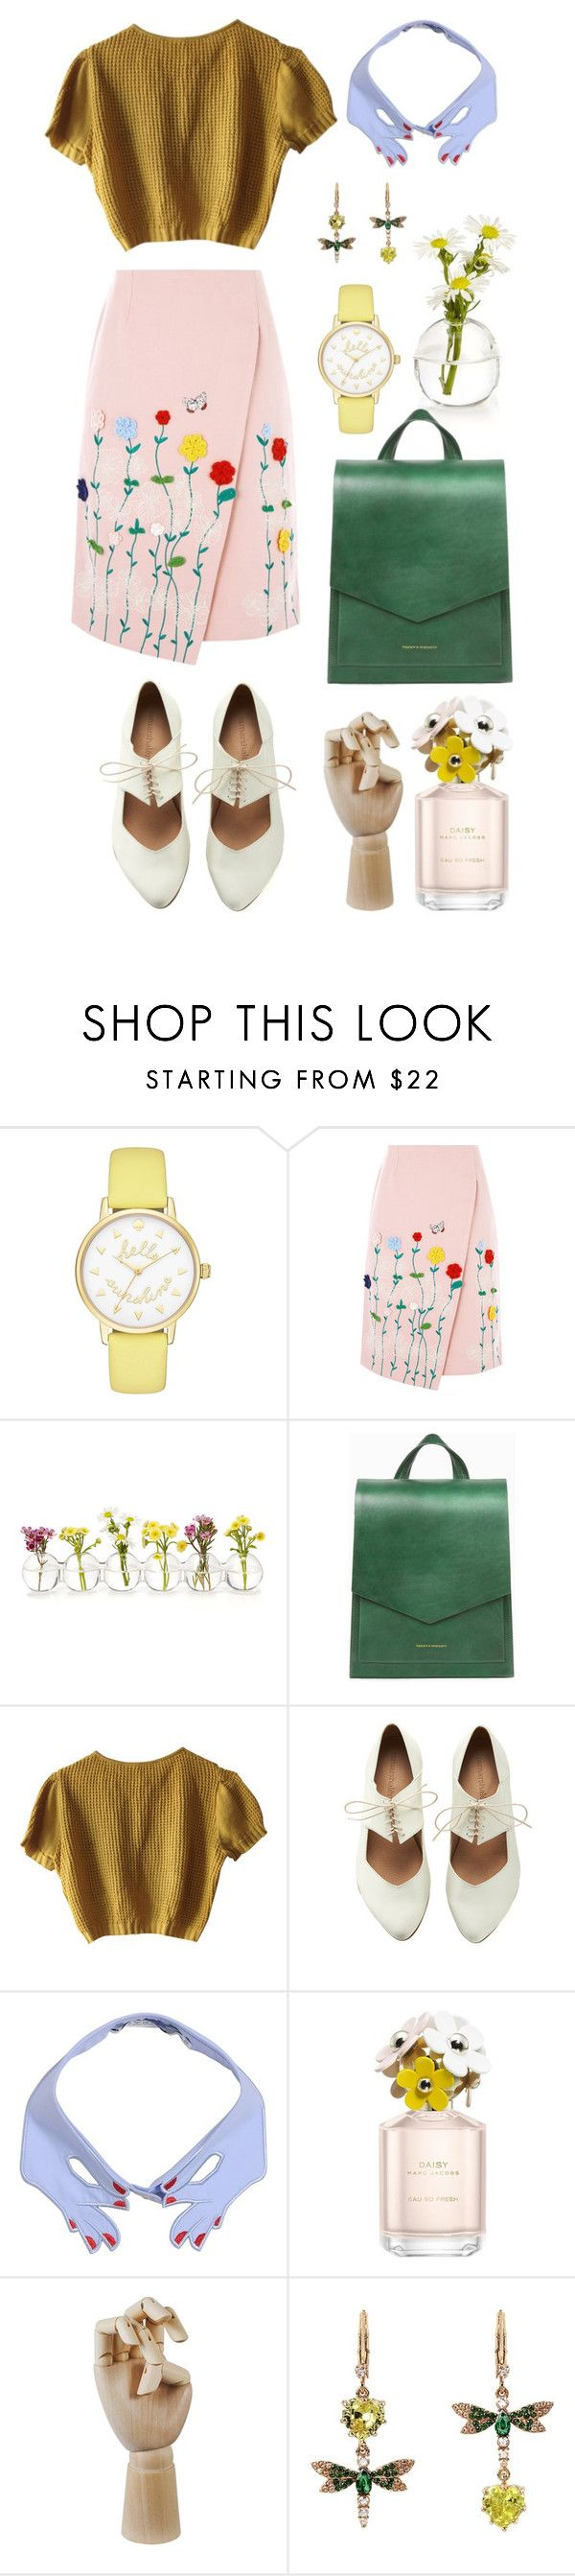 """Flowery"" by bechs on Polyvore featuring Kate Spade, VIVETTA, Schumacher, Marc Jacobs, HAY, Betsey Johnson and vintage"